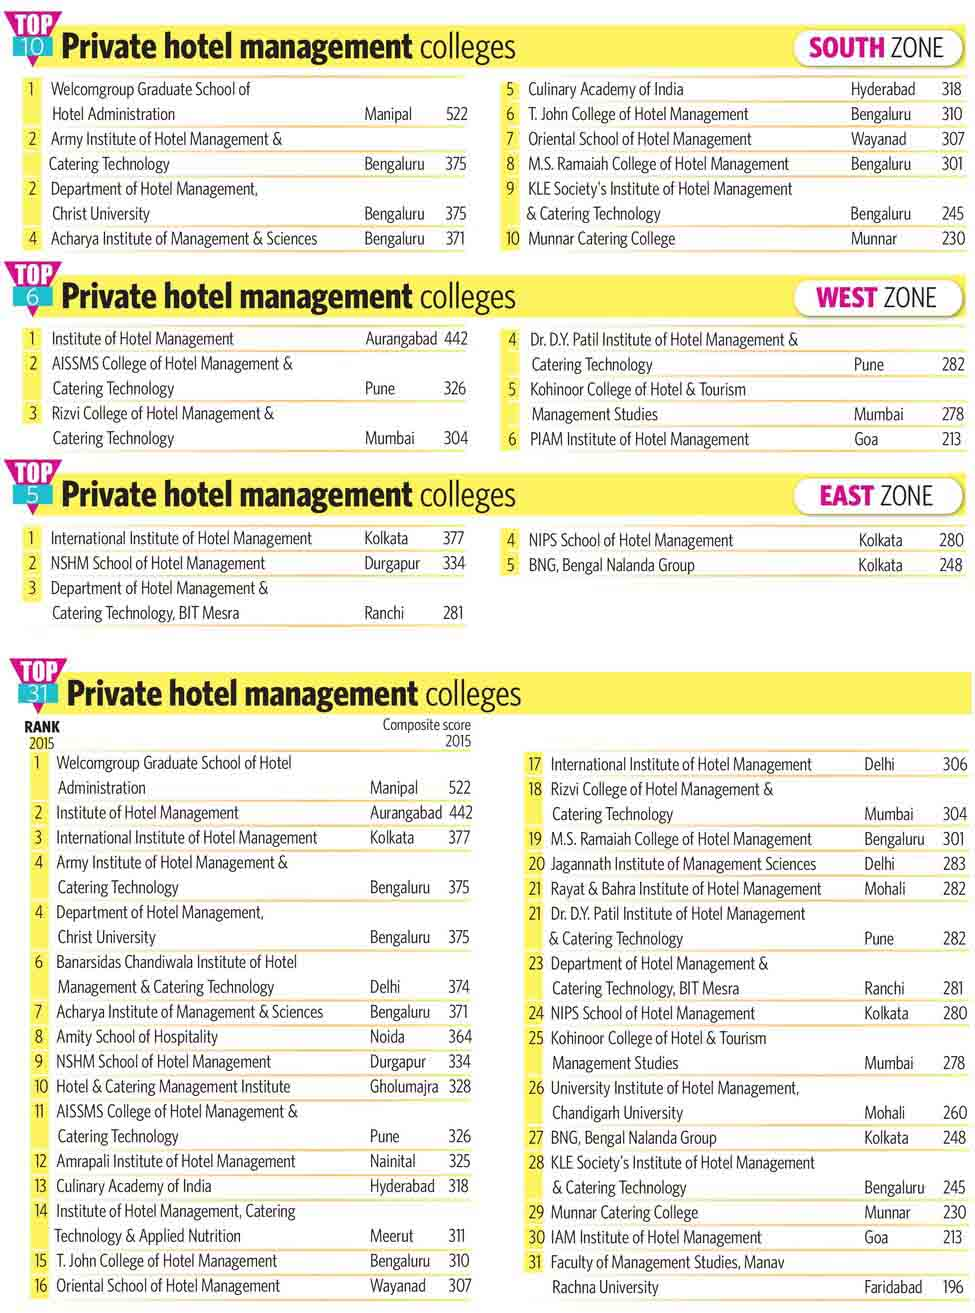 90-Private-hotel-management-cooleges